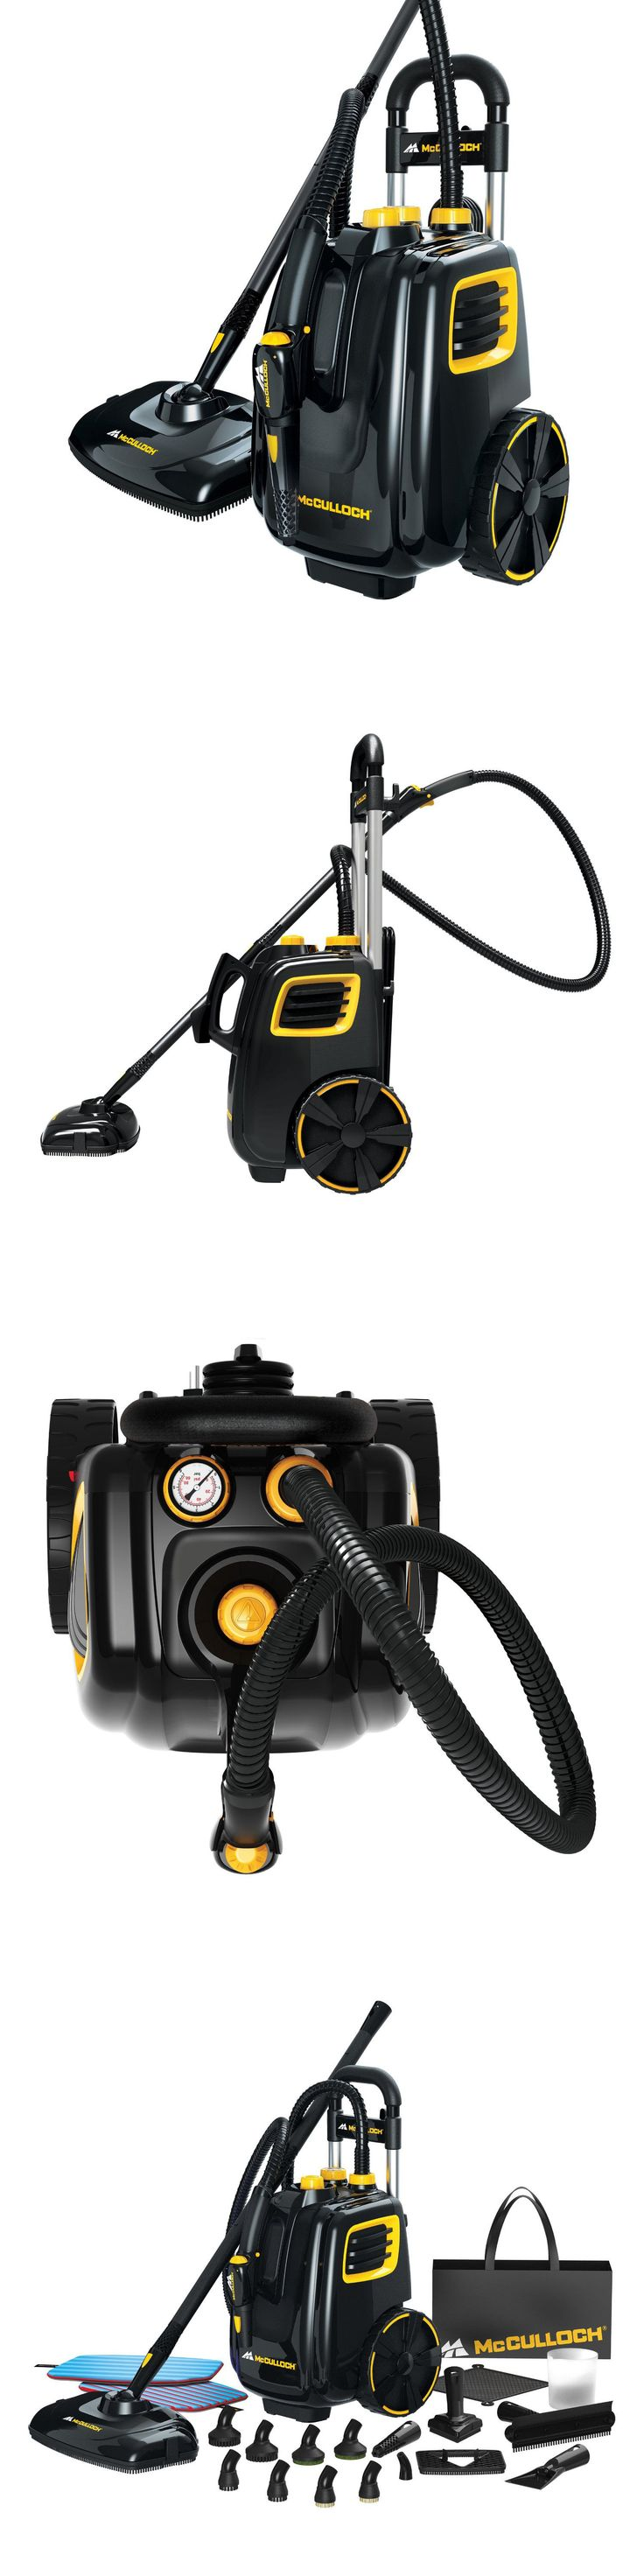 Carpet steamers 79656 steam cleaner system canister deep